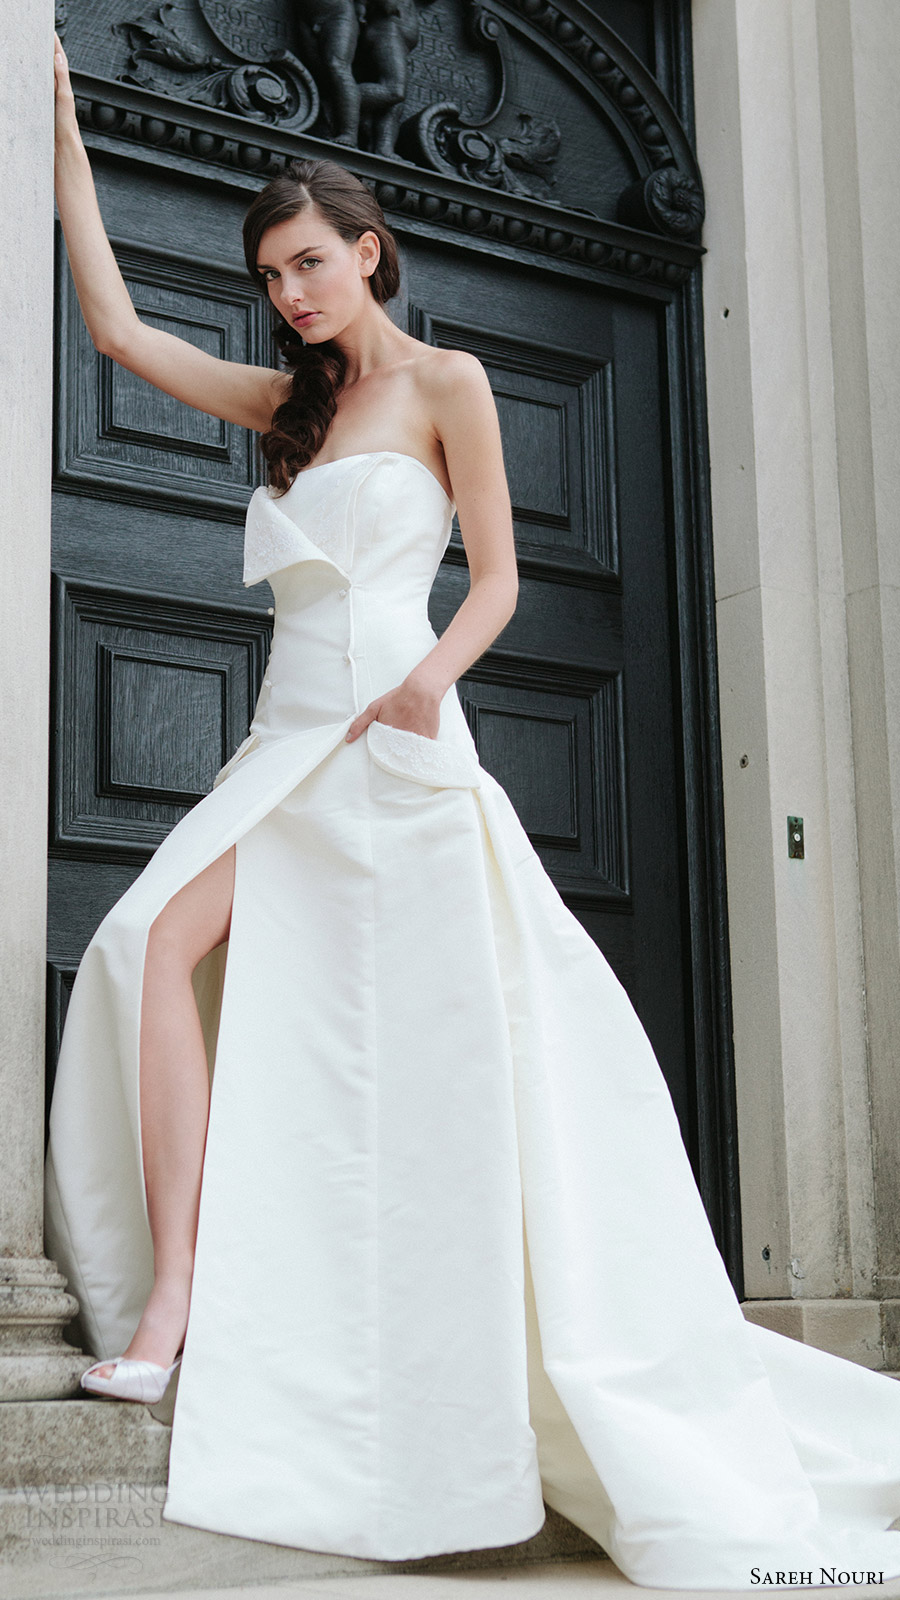 sareh nouri bridal fall 2016 strapless straight across a line wedding dress (tara) fv slit skirt pocket edgy